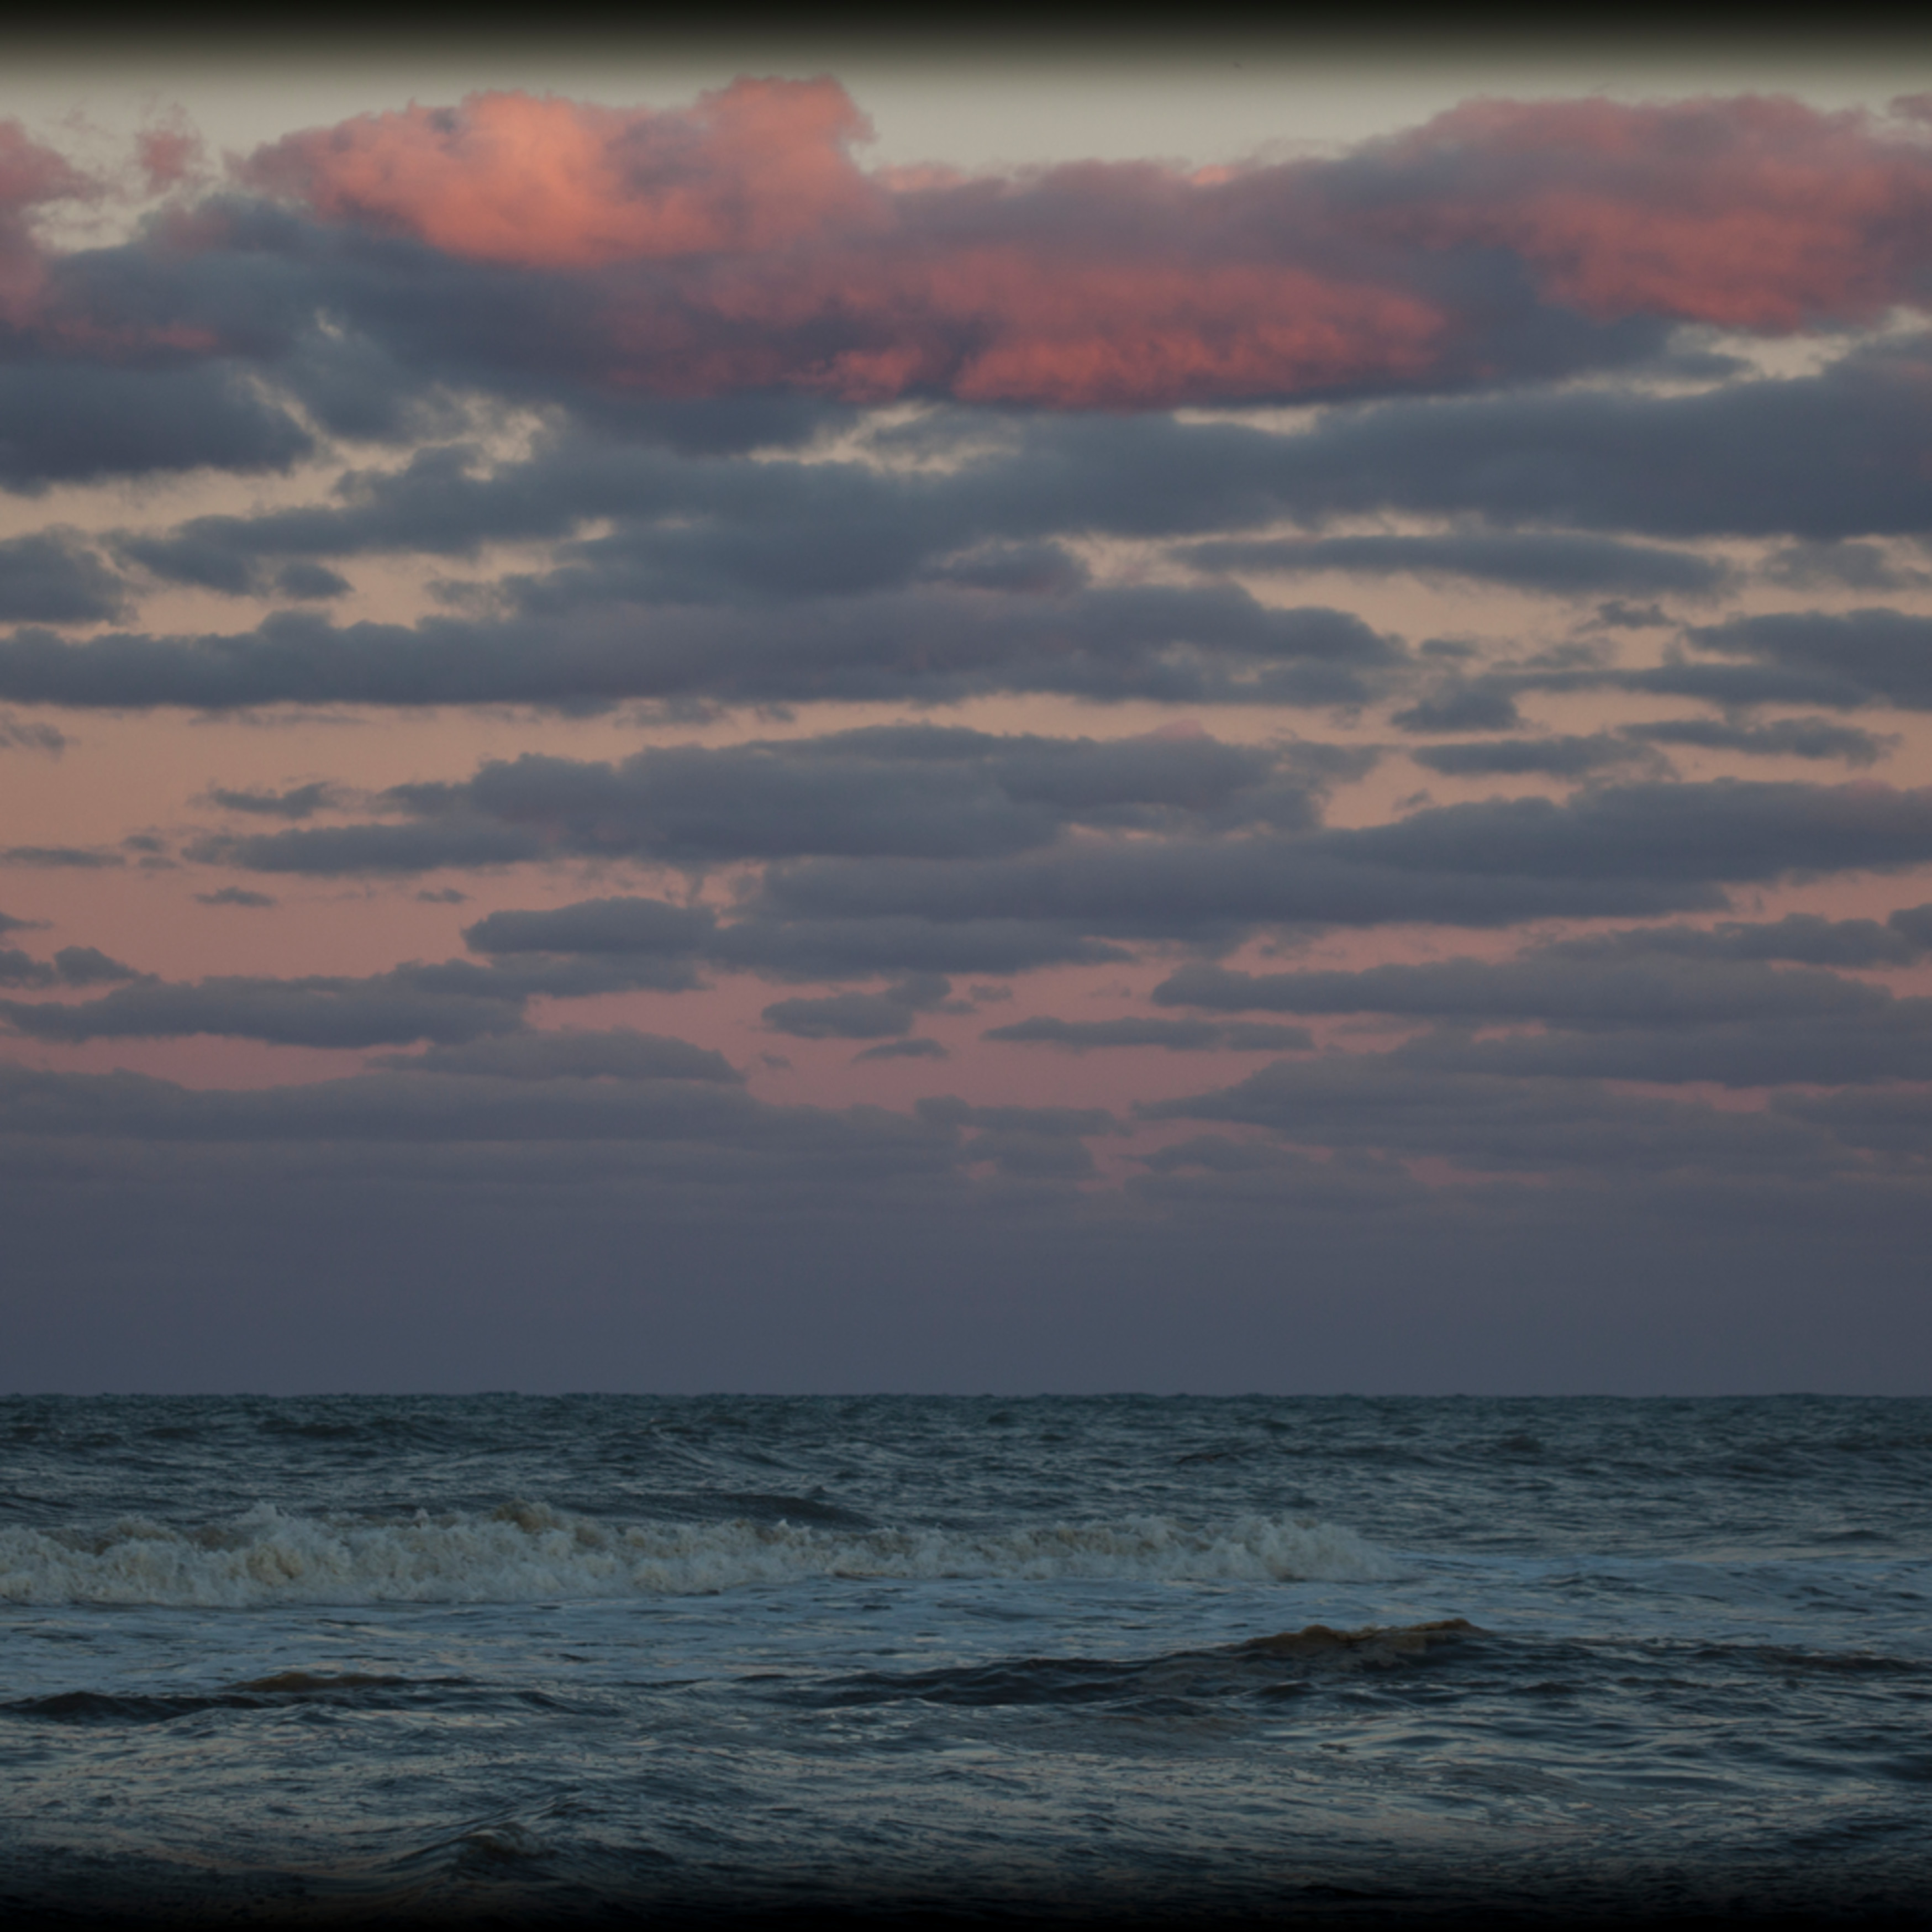 Outer banks 8 8854 f3zsxt